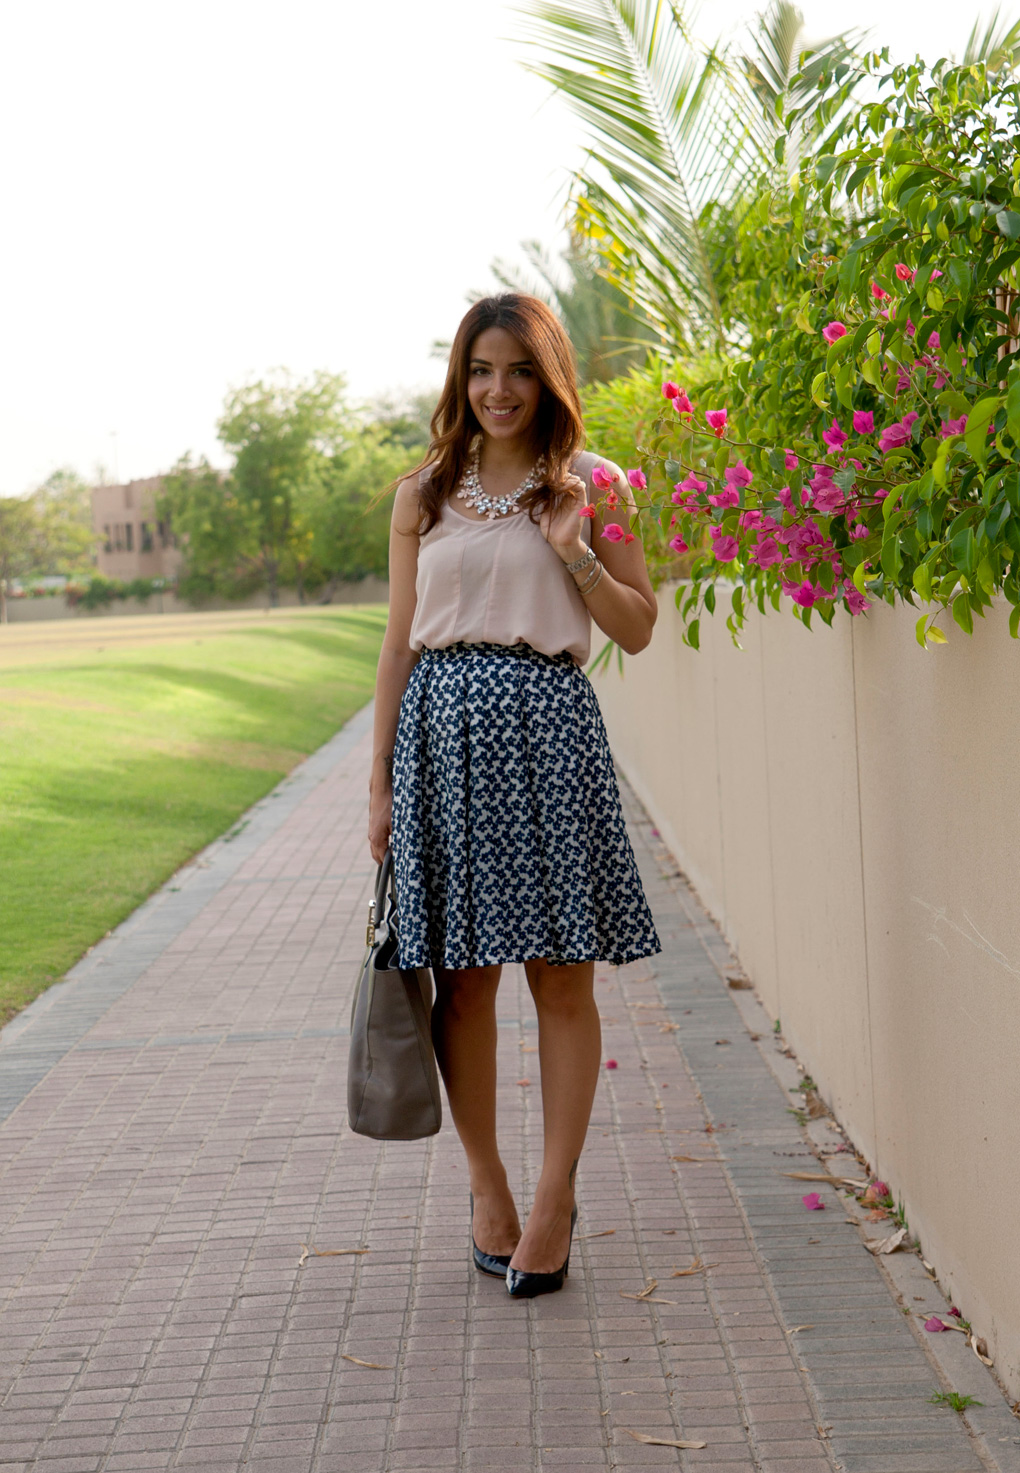 Lyla_Loves_Fashion_JW_Anderson_skirt_ASOS_Fendi_Zara_9032